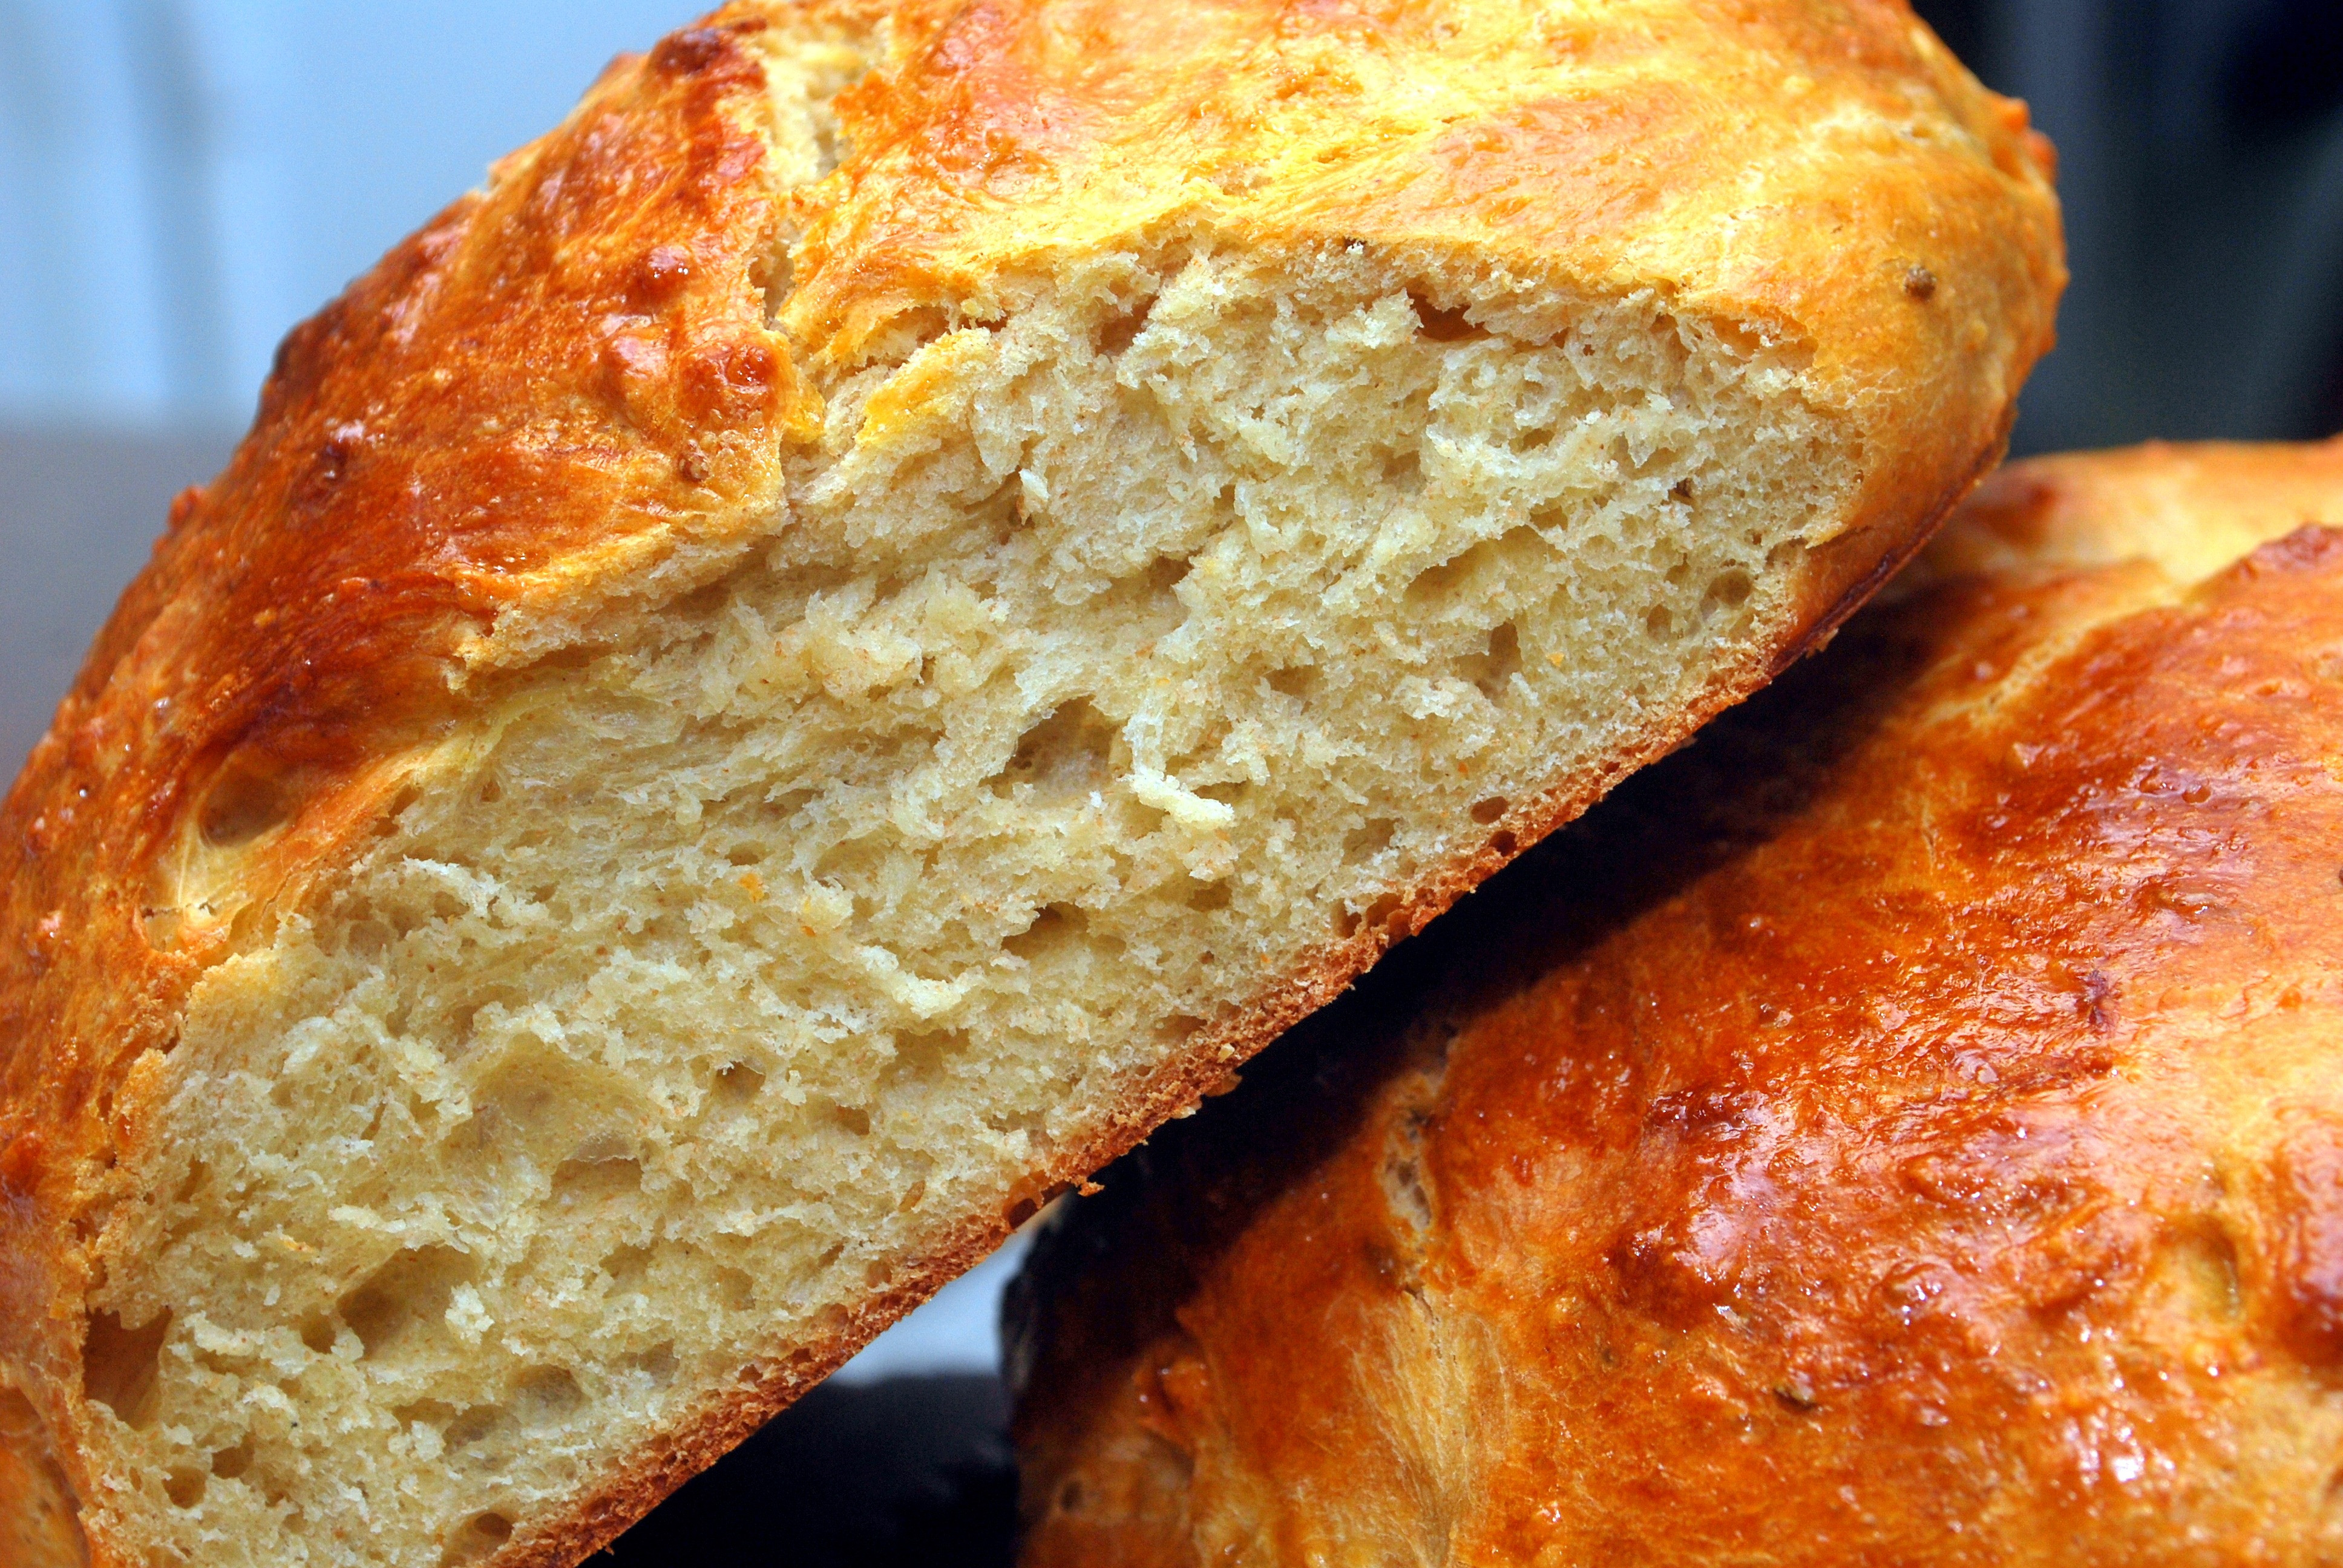 Italian Easter Bread With Anise  Italian Easter Bread Anise Flavored Recipe — Dishmaps